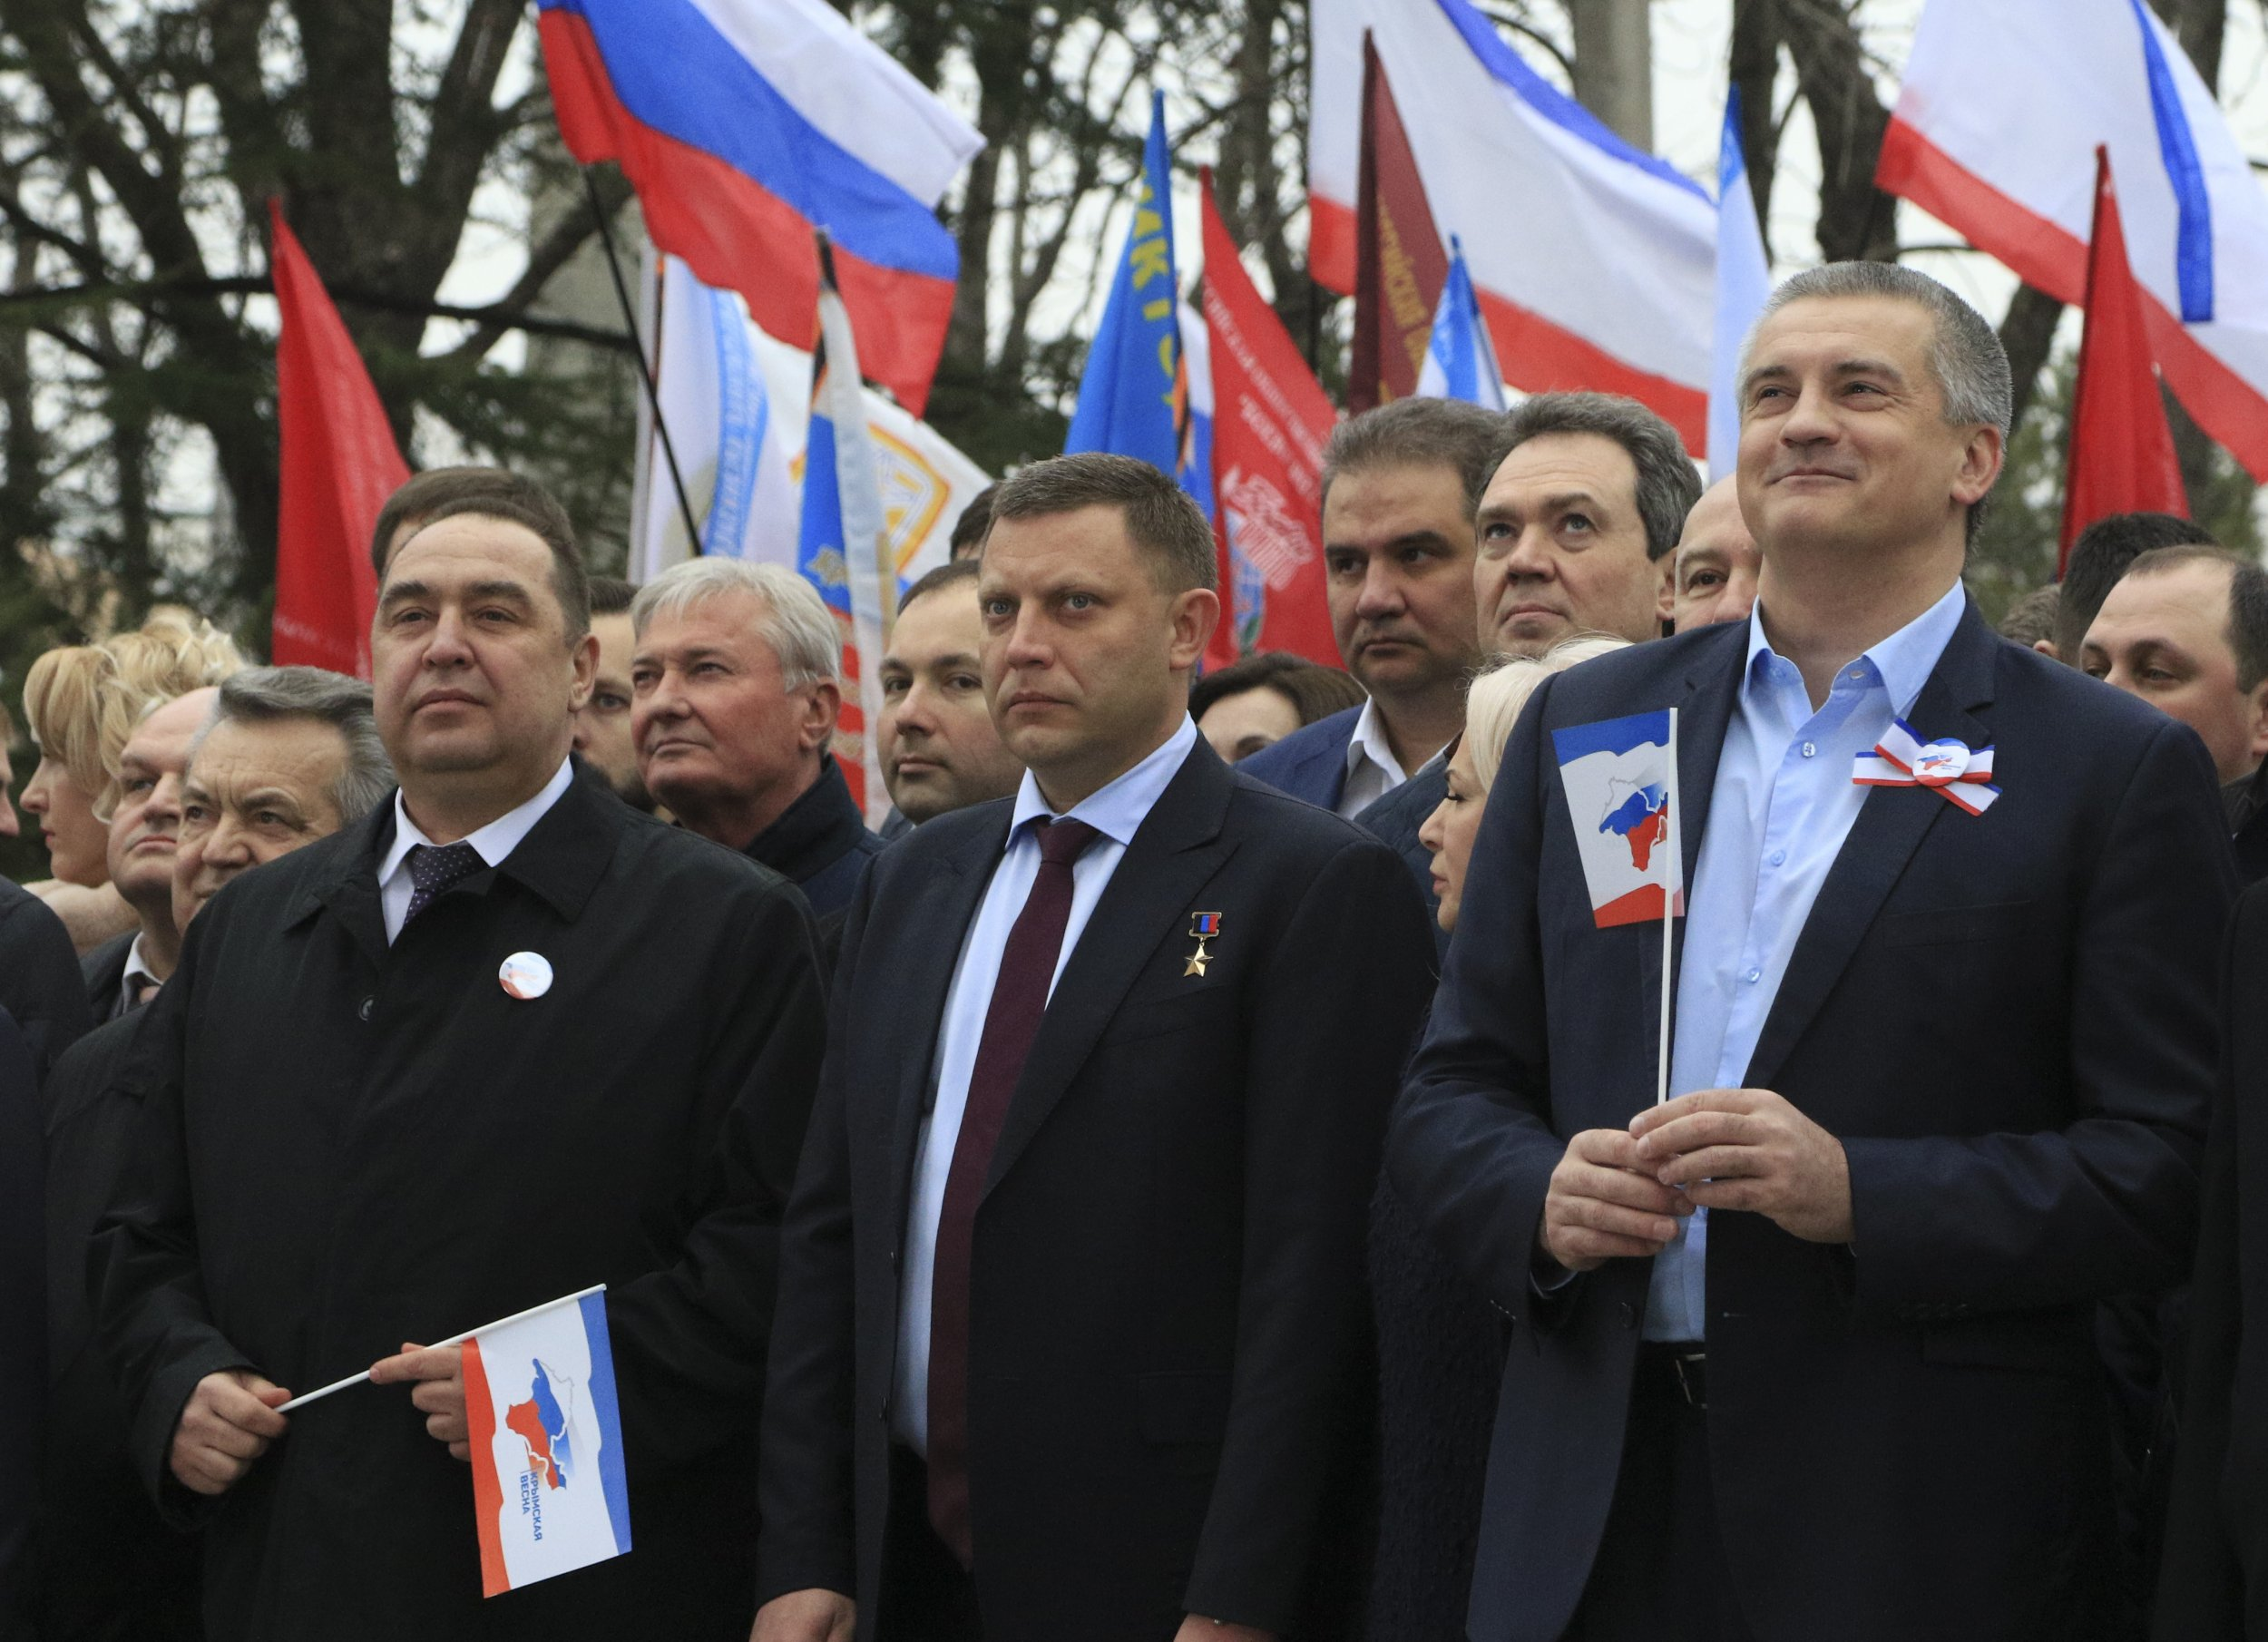 Russian separatist leaders